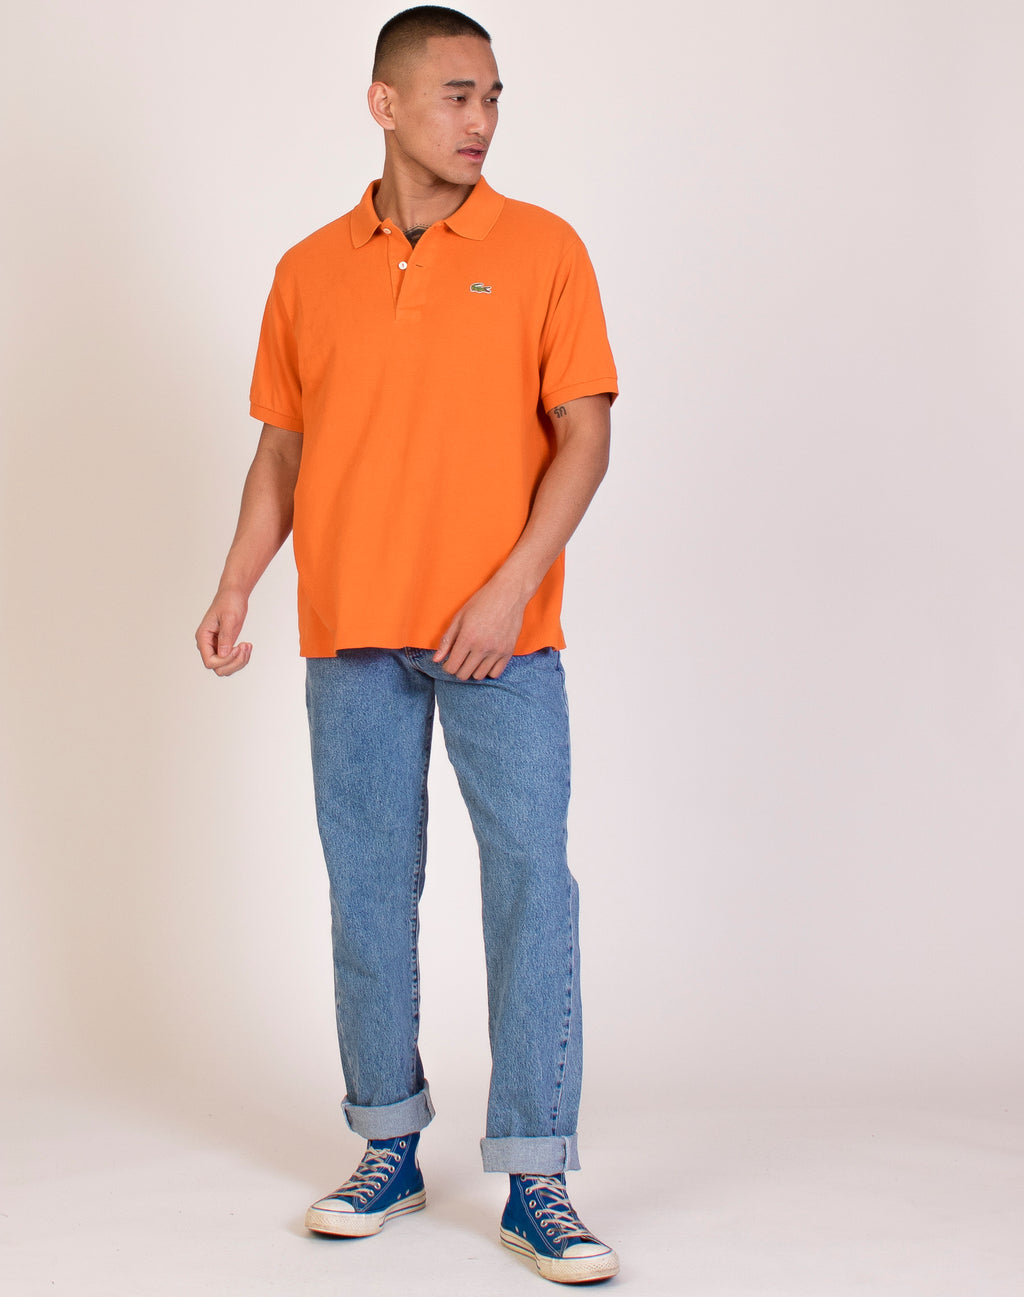 LACOSTE OVERSIZED ORANGE POLO SHIRT